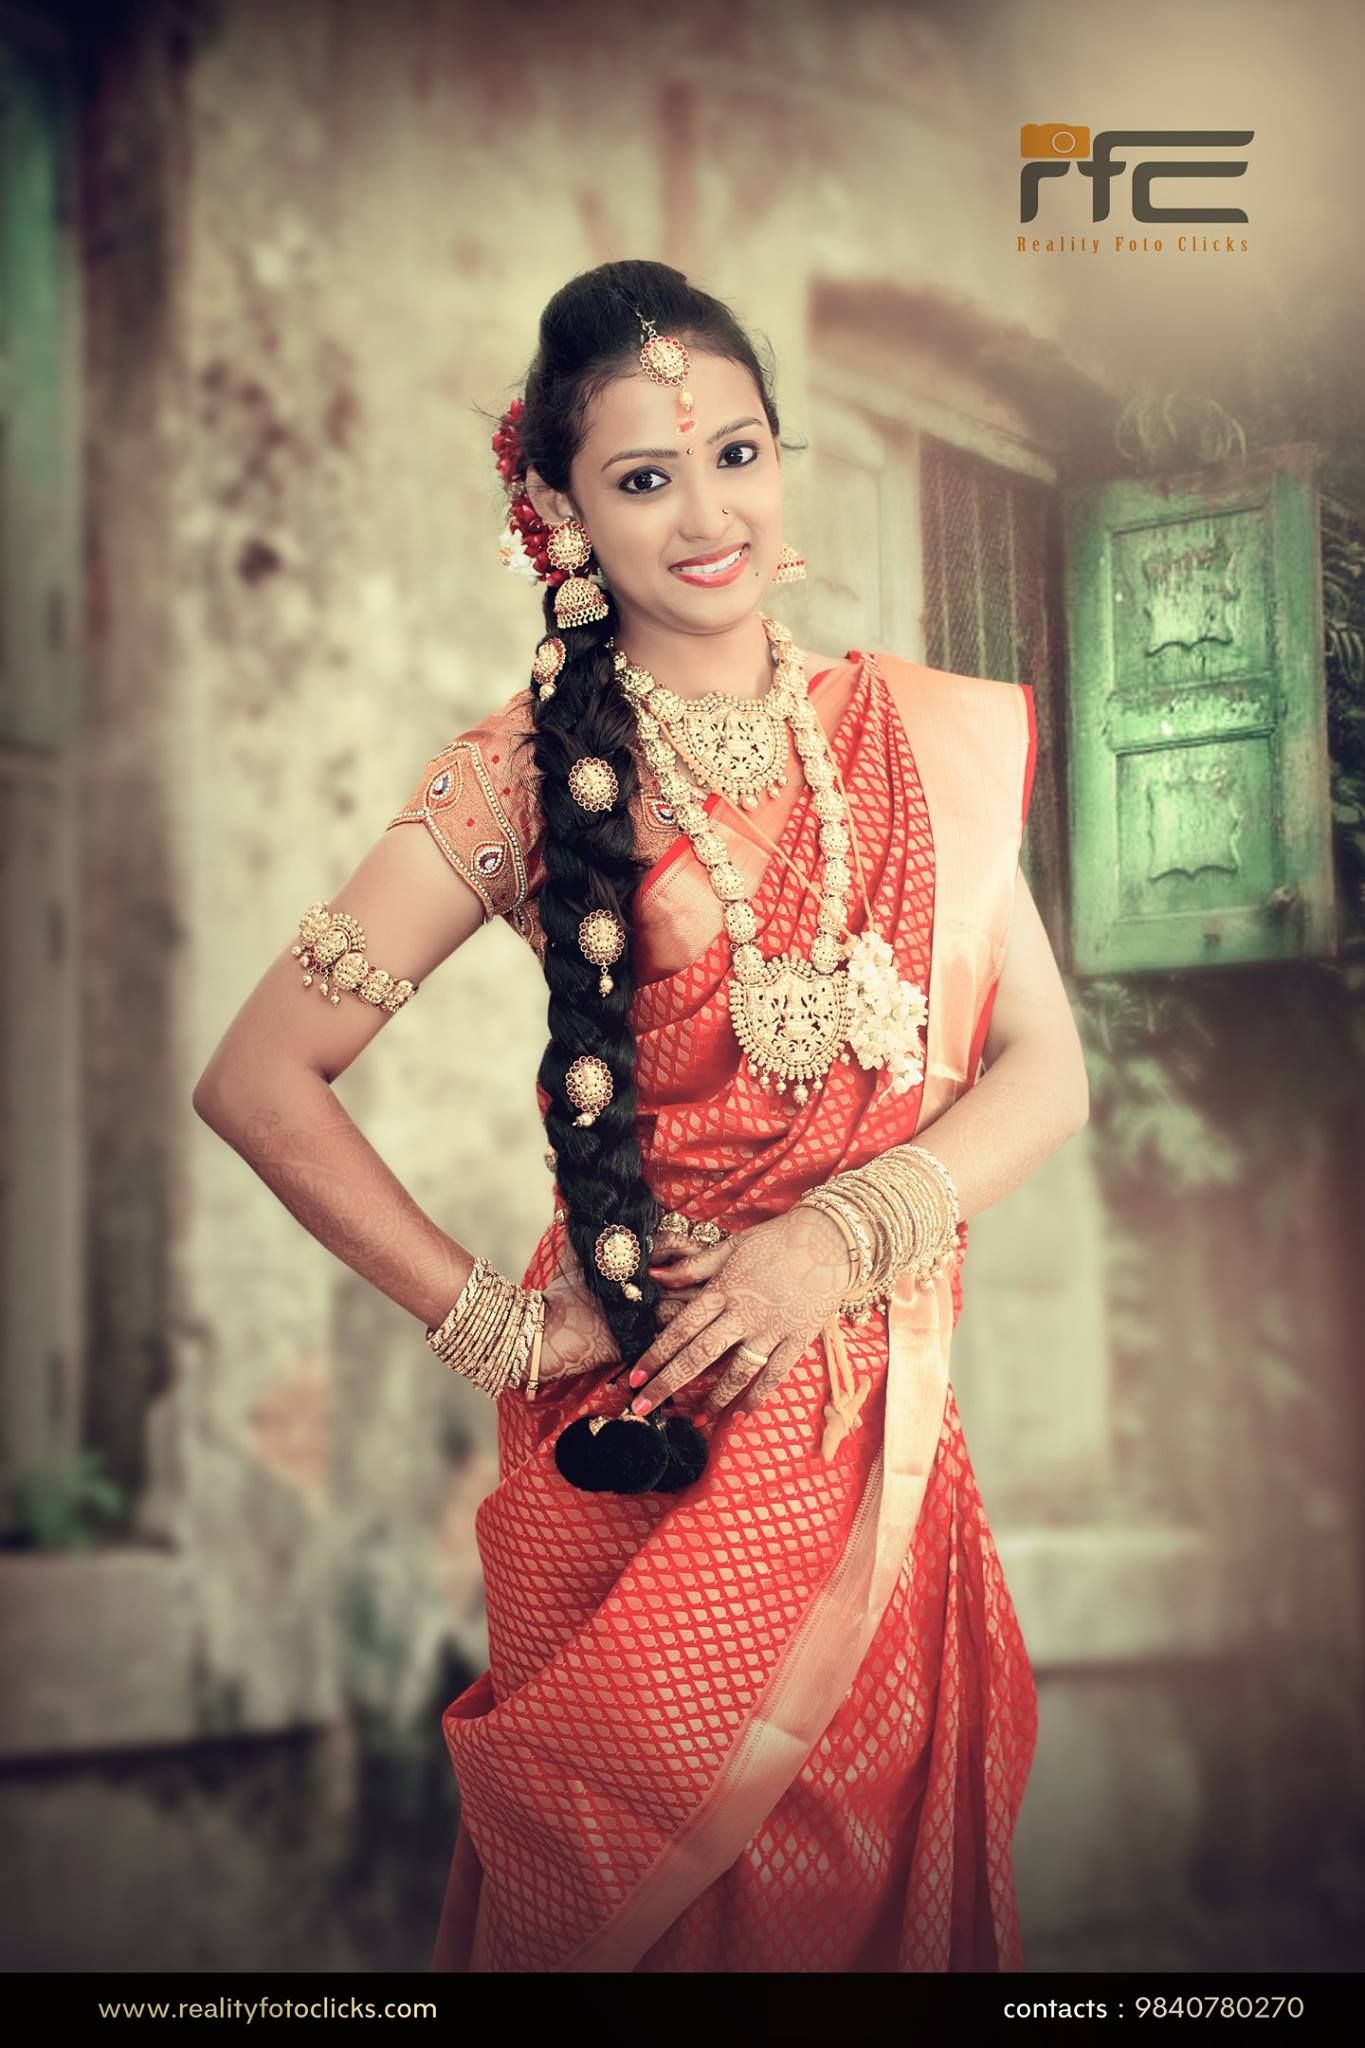 Kerala wedding reception dresses for the bride  Bridal jewelry  South Indian Wedding Collections  Mom  Pinterest